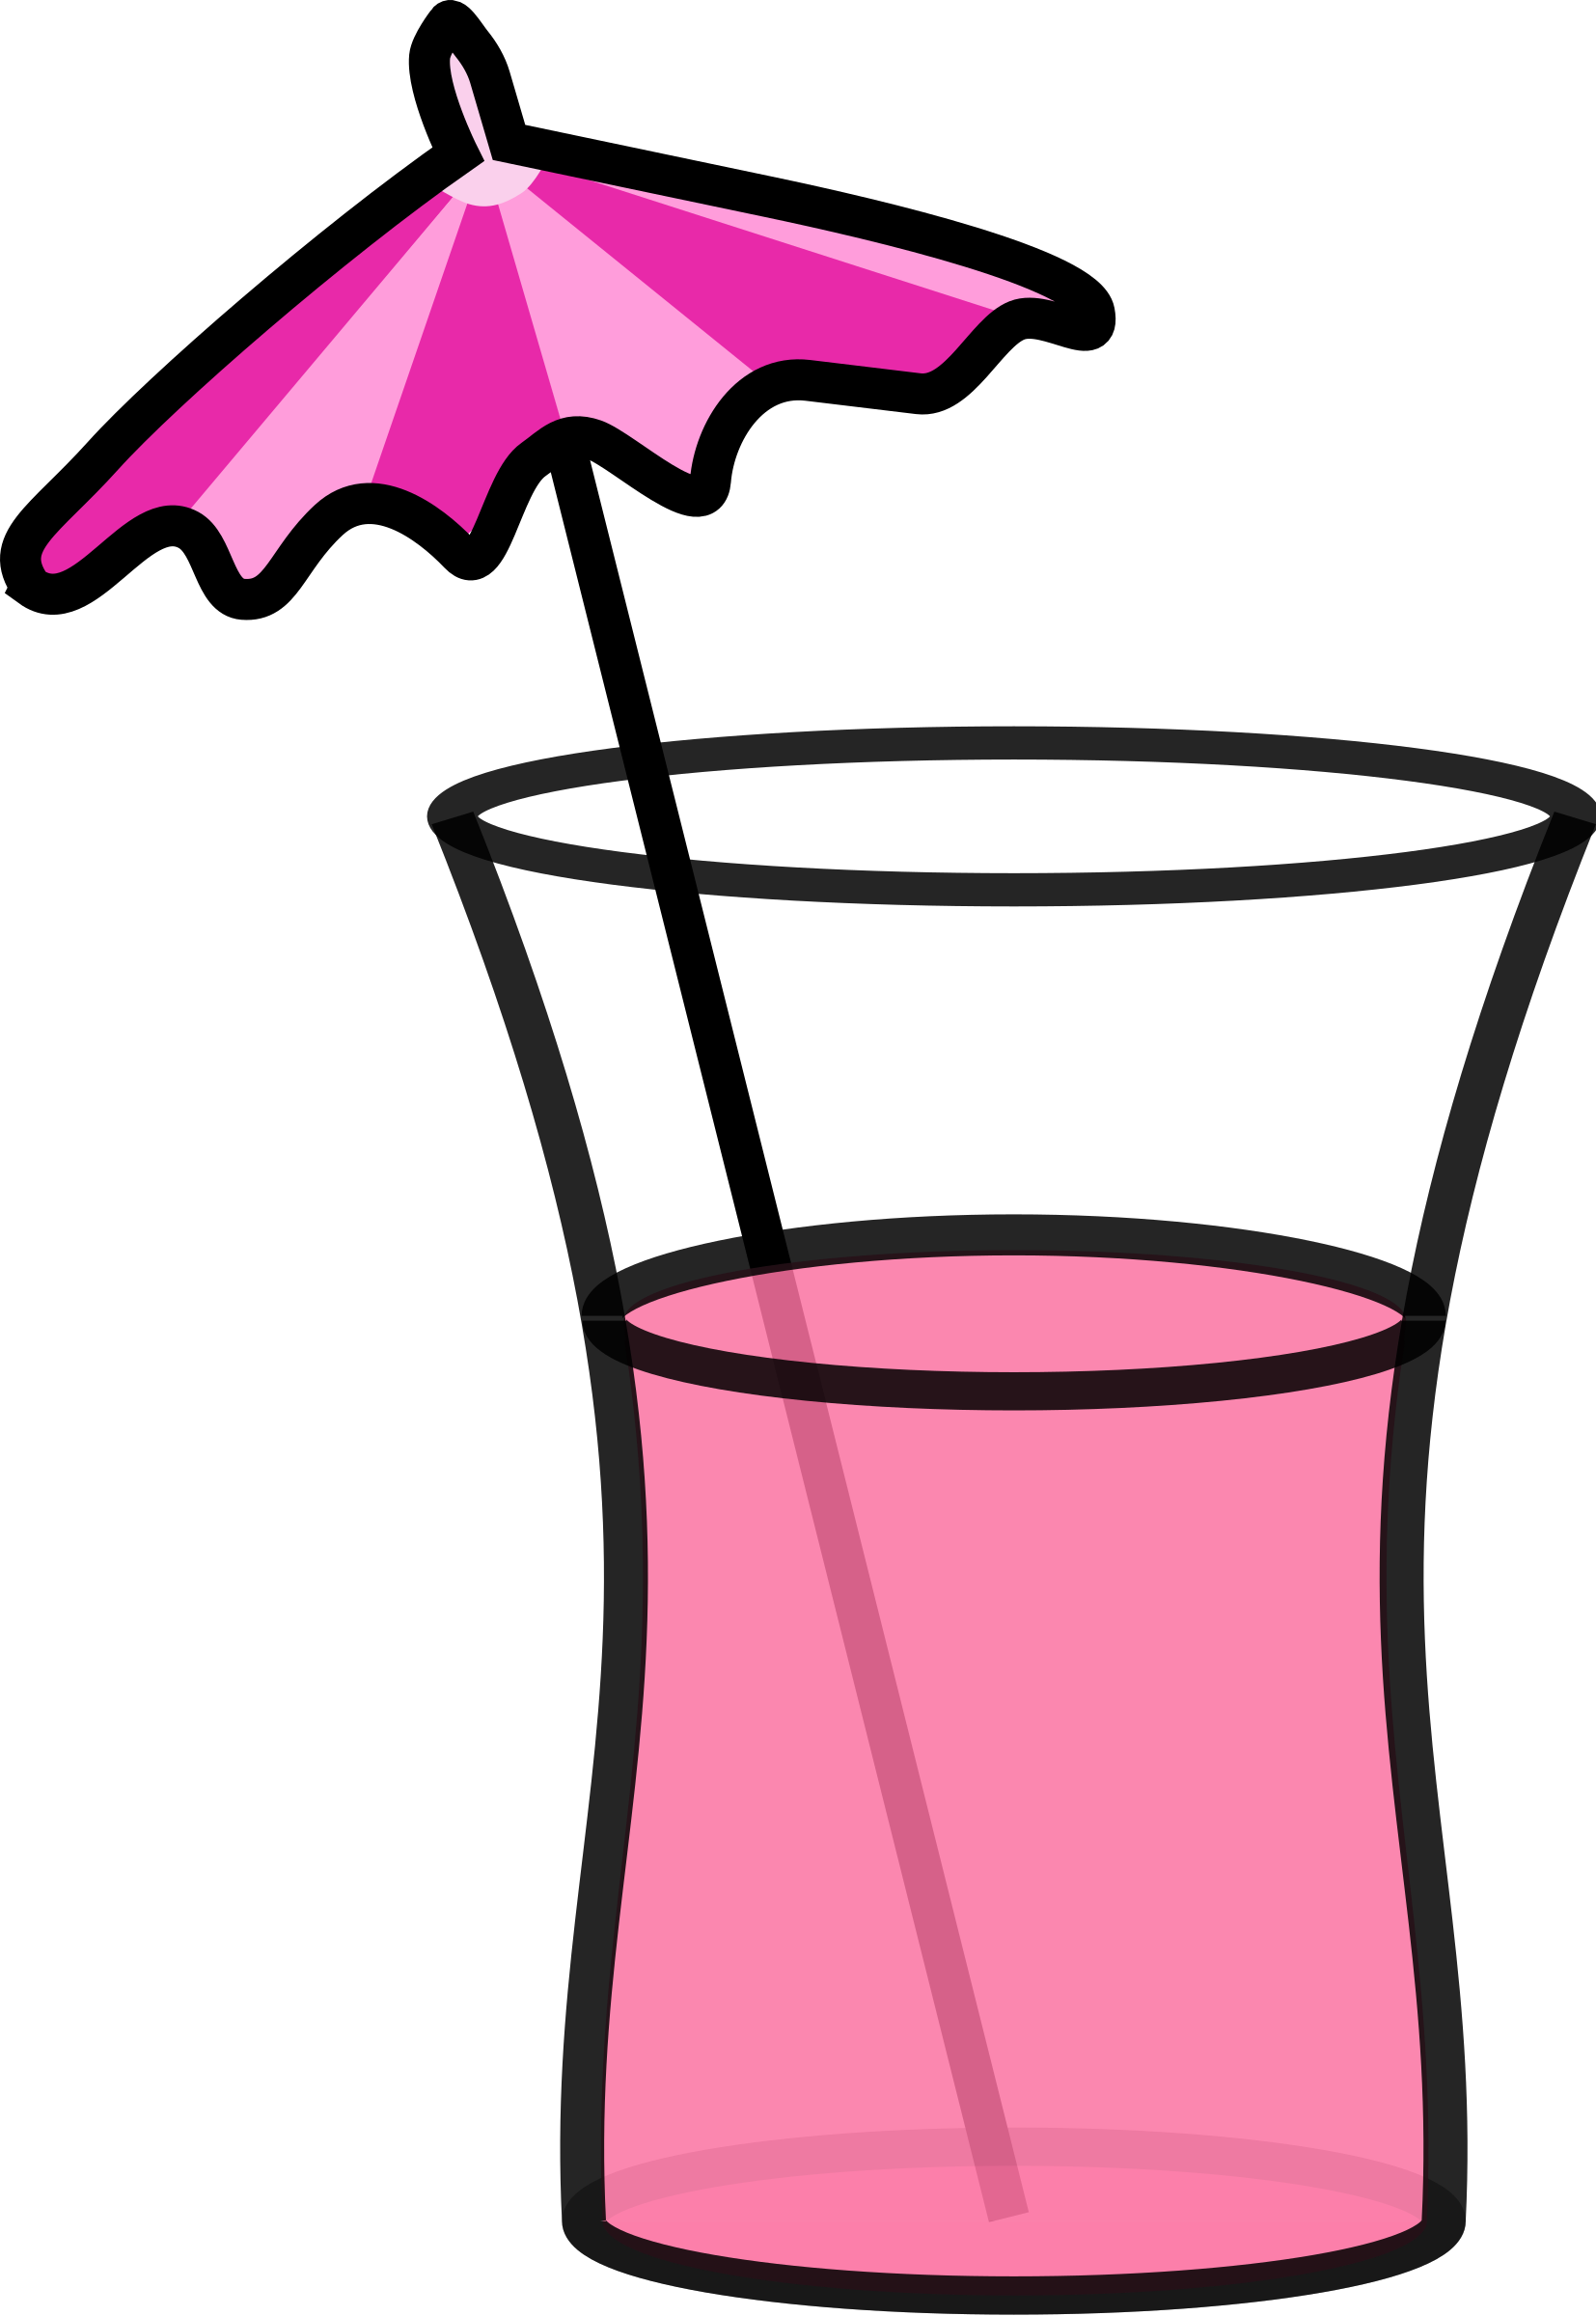 Drink umbrella clipart download Umbrella Drink Pink Cocktail clipart free image download